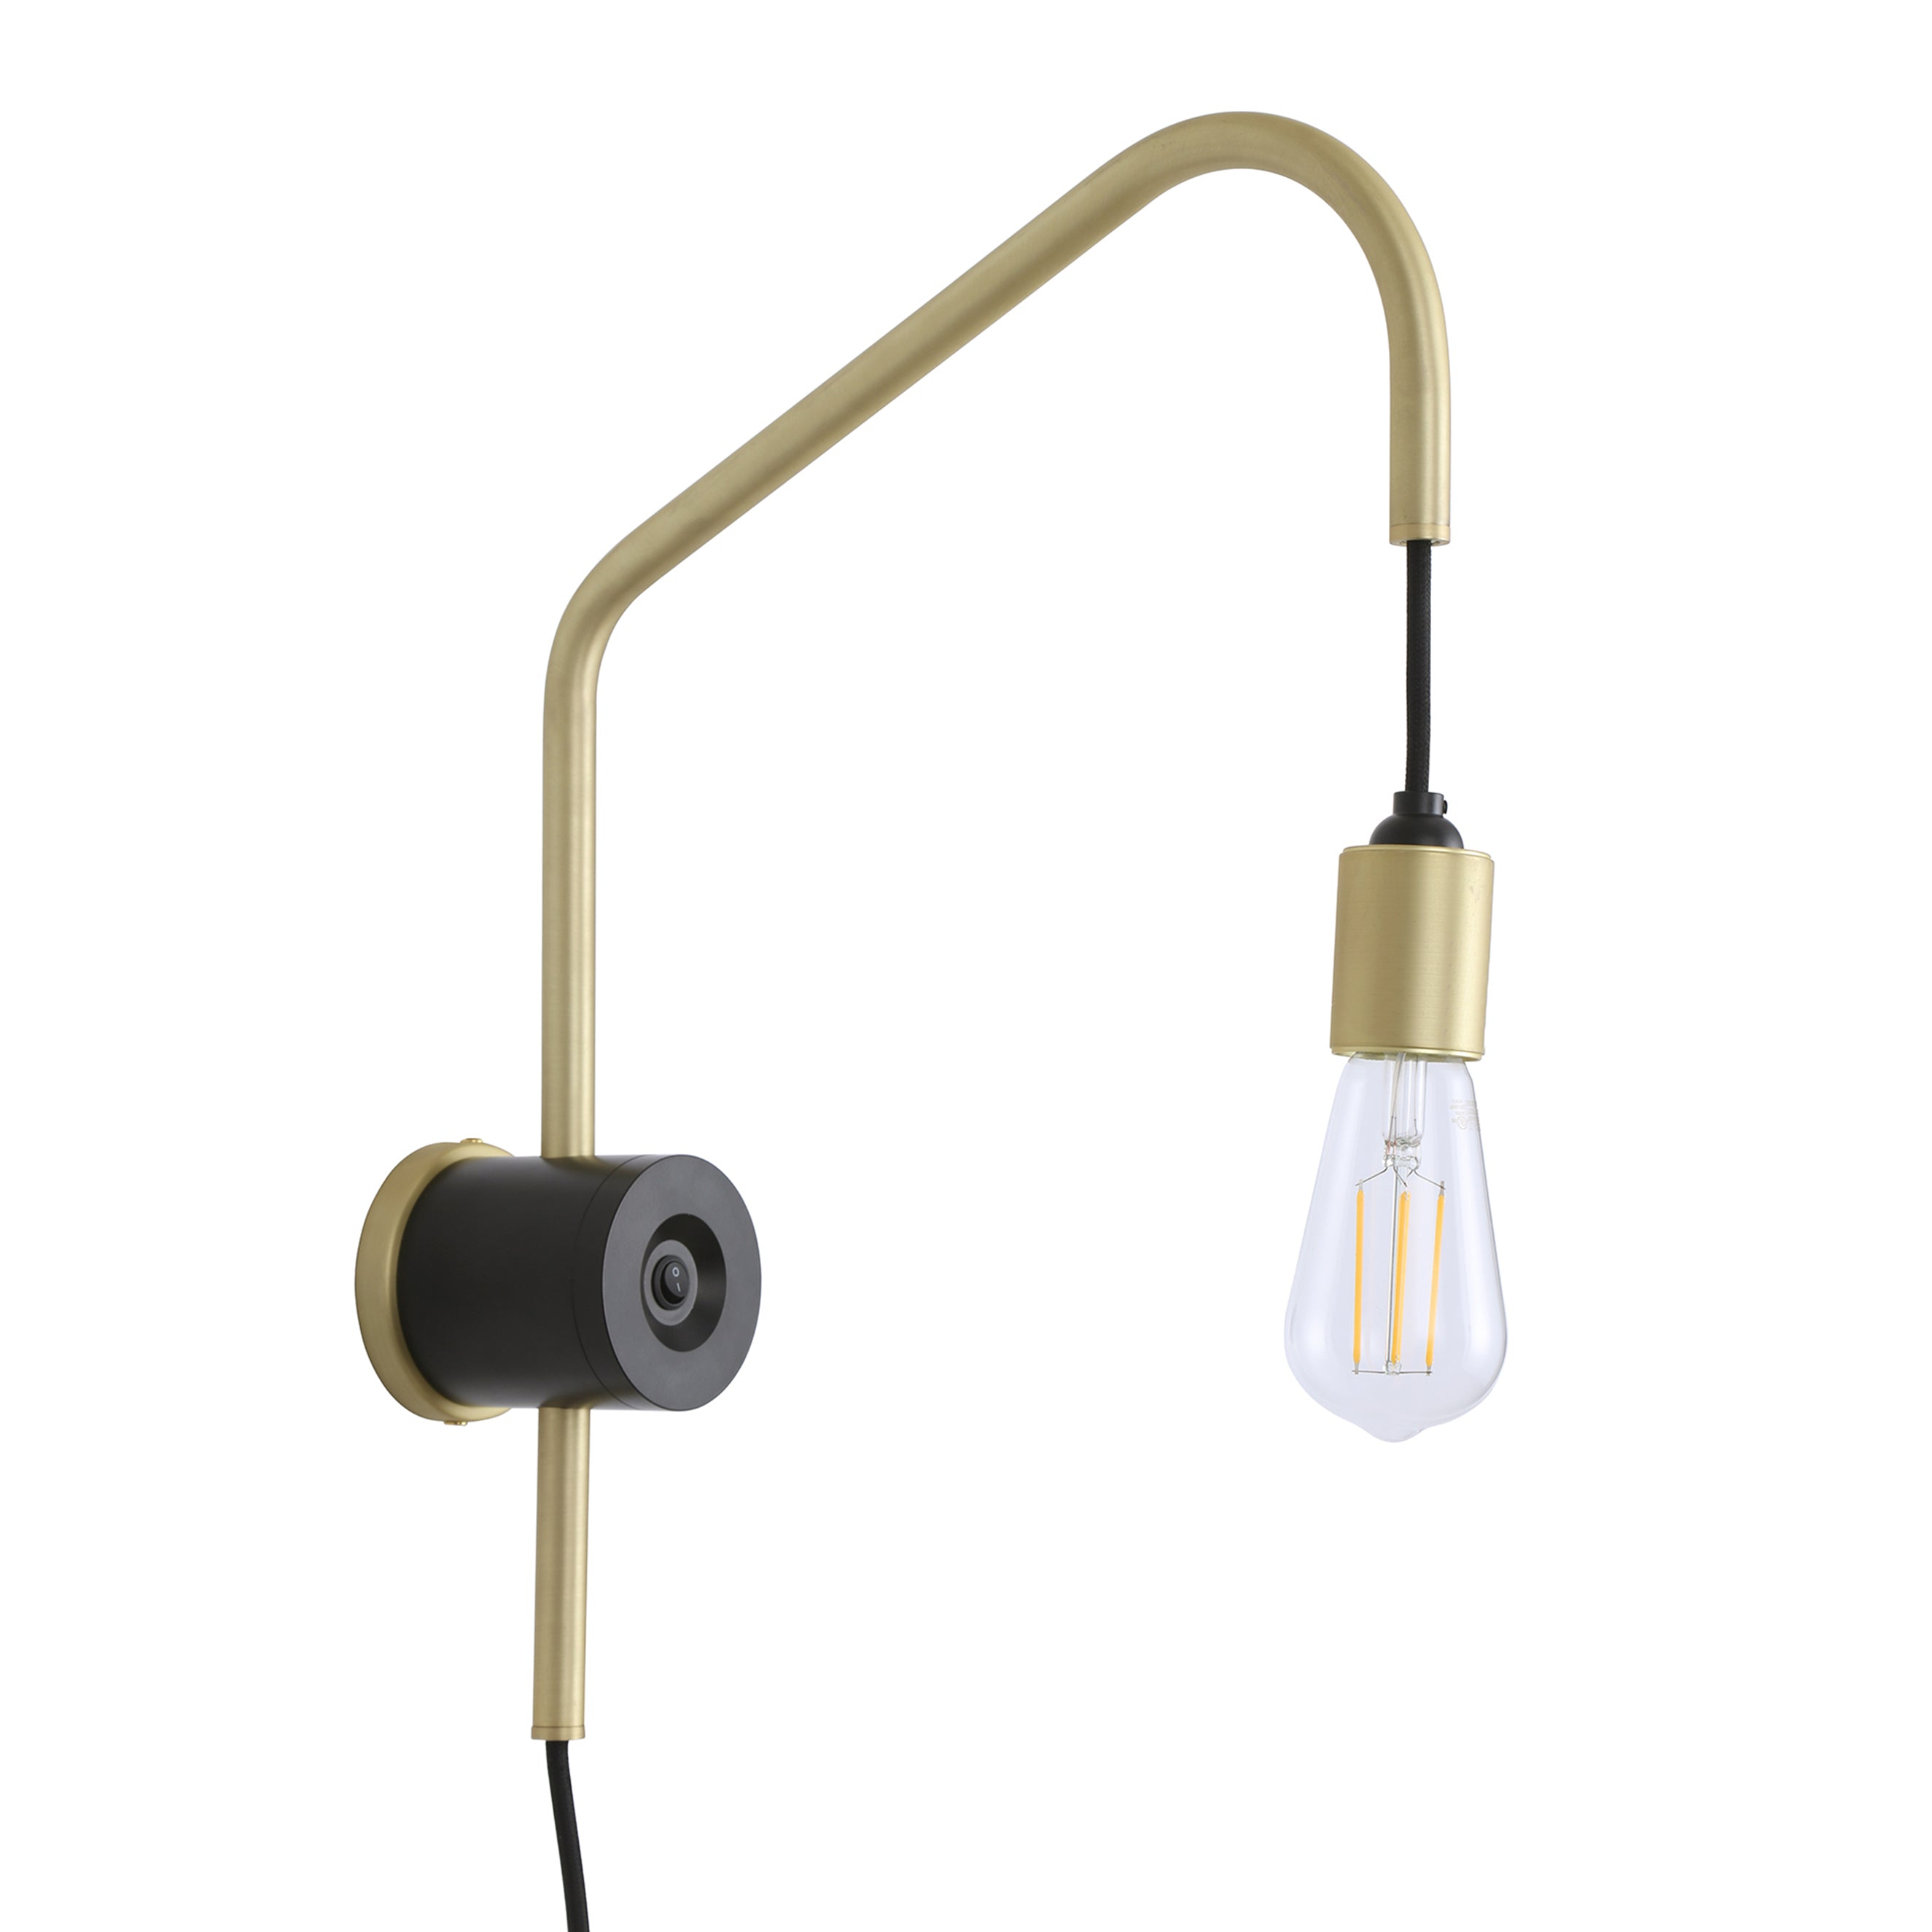 Arioso Exposed Bulb Plug-in Wall Lamp, LED bulb included